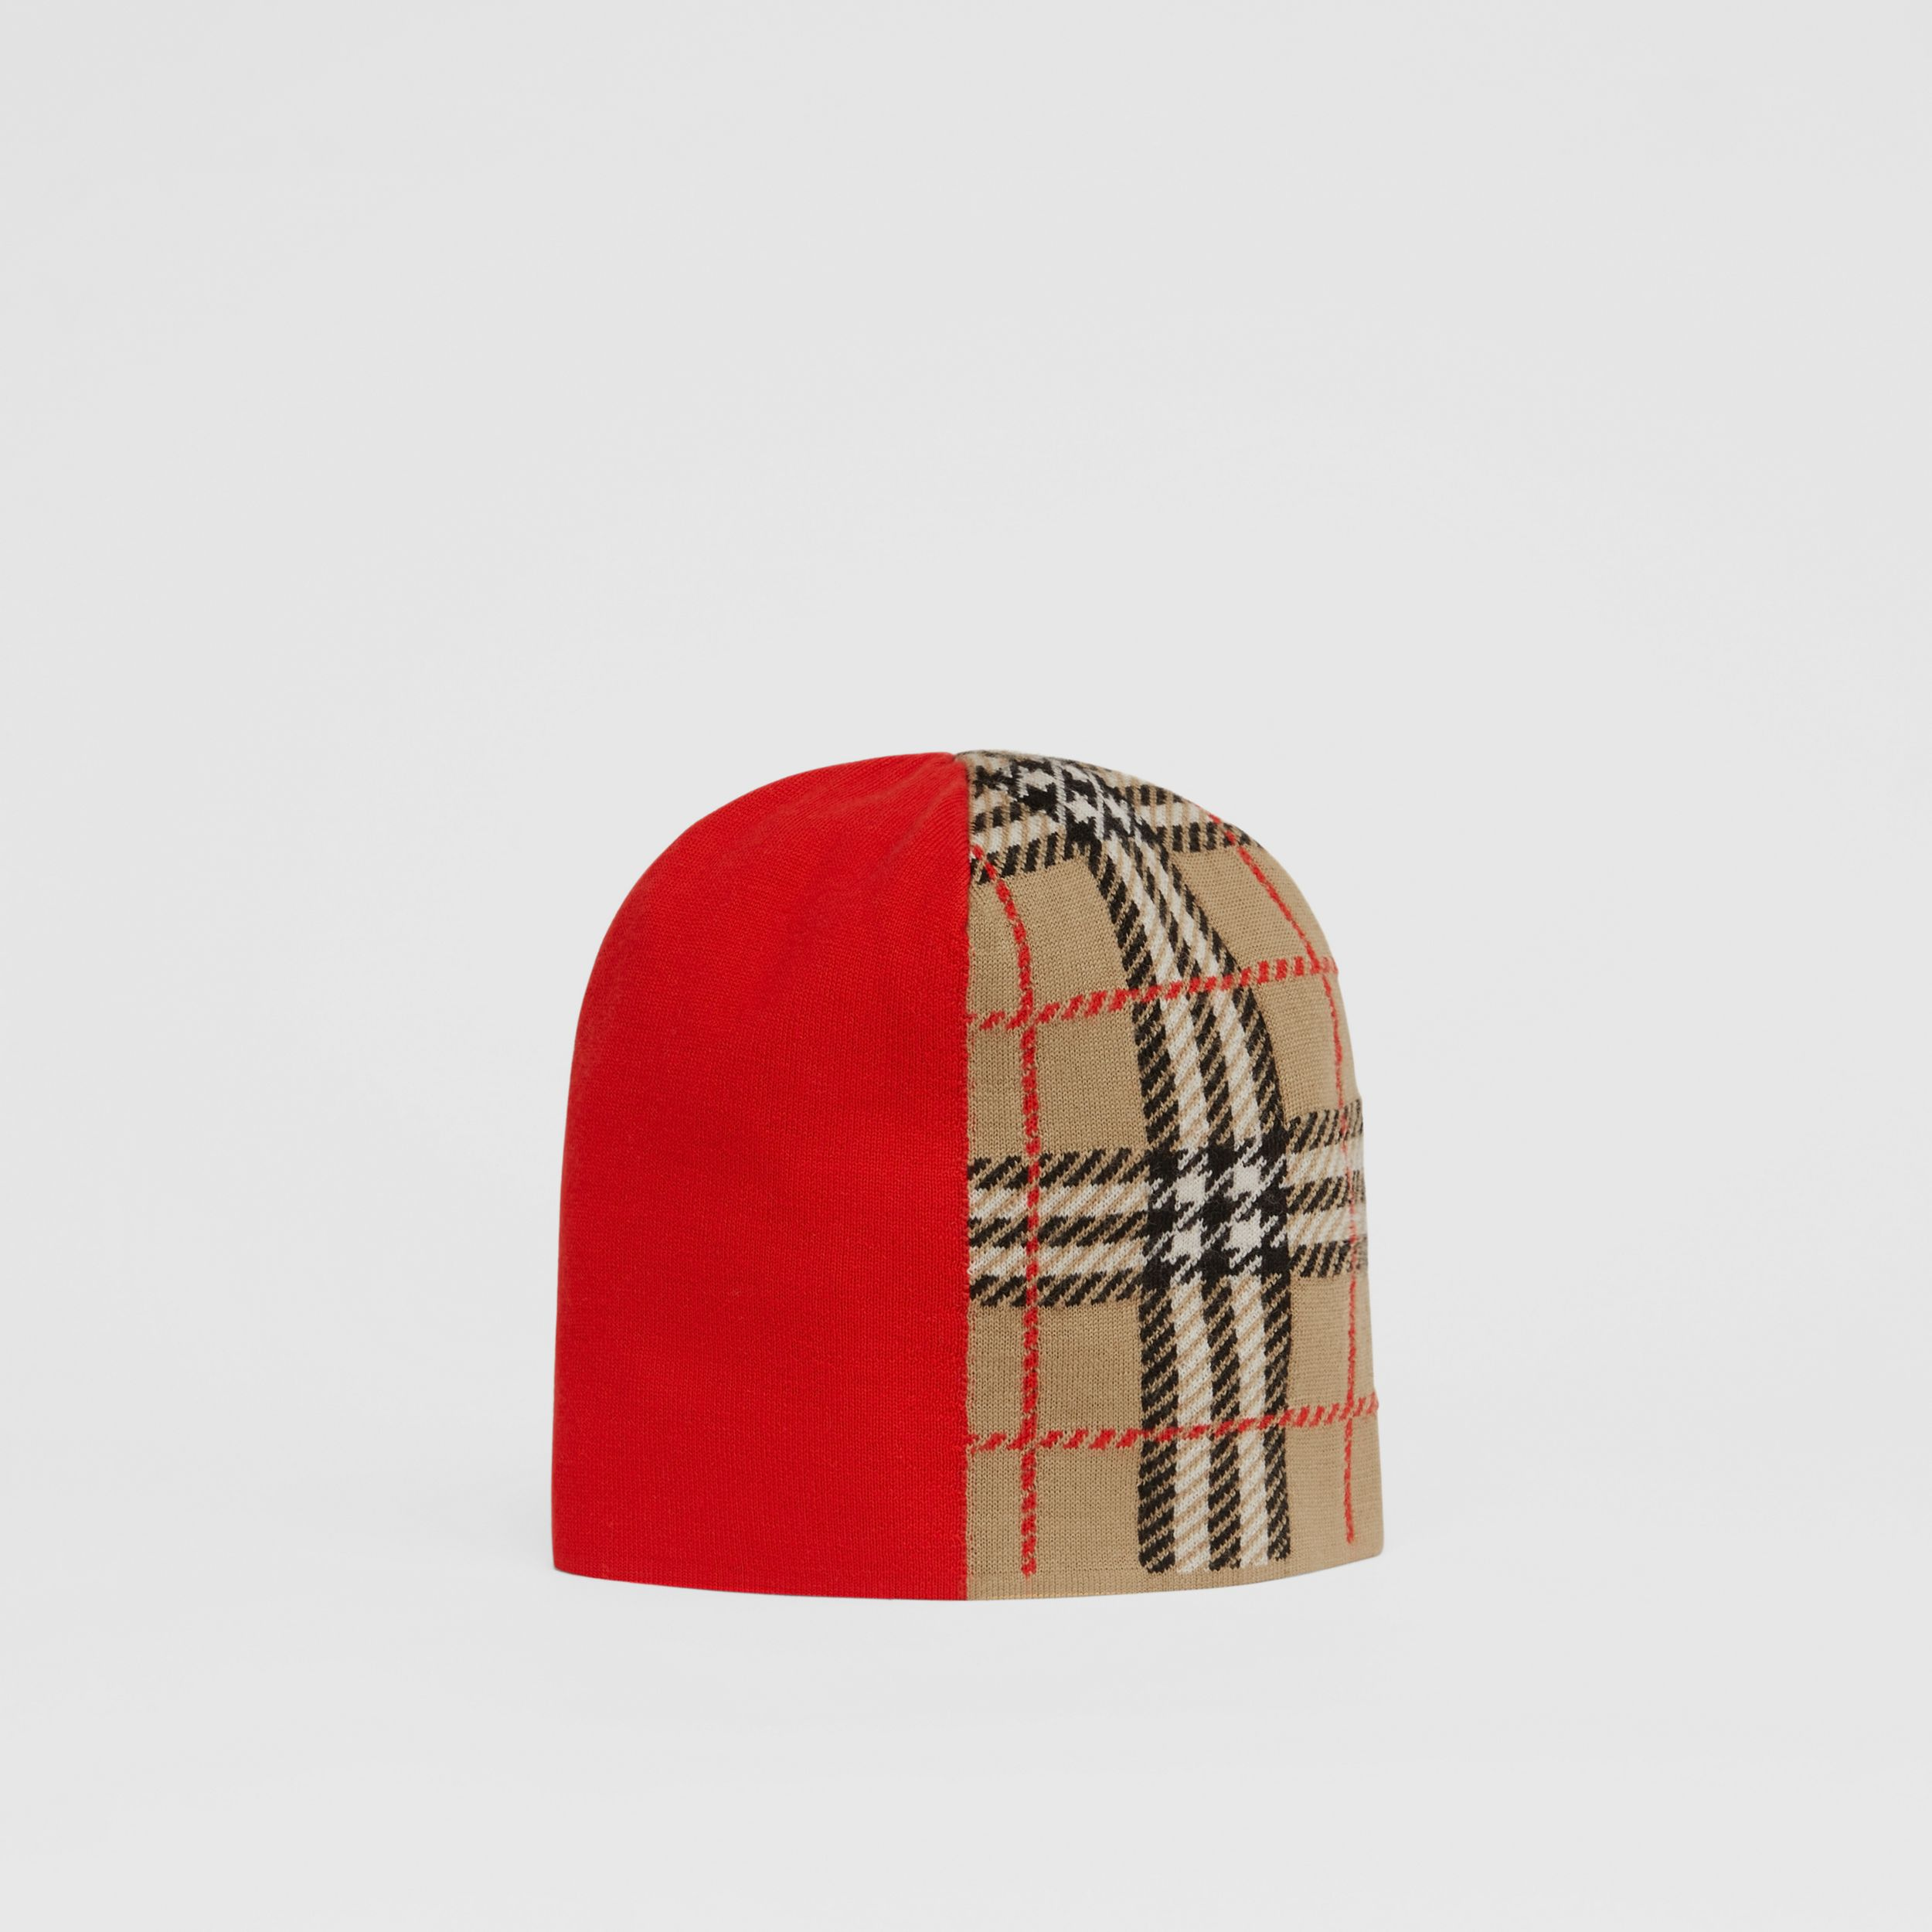 Colour Block Check Merino Wool Jacquard Beanie in Bright Red - Children | Burberry - 1